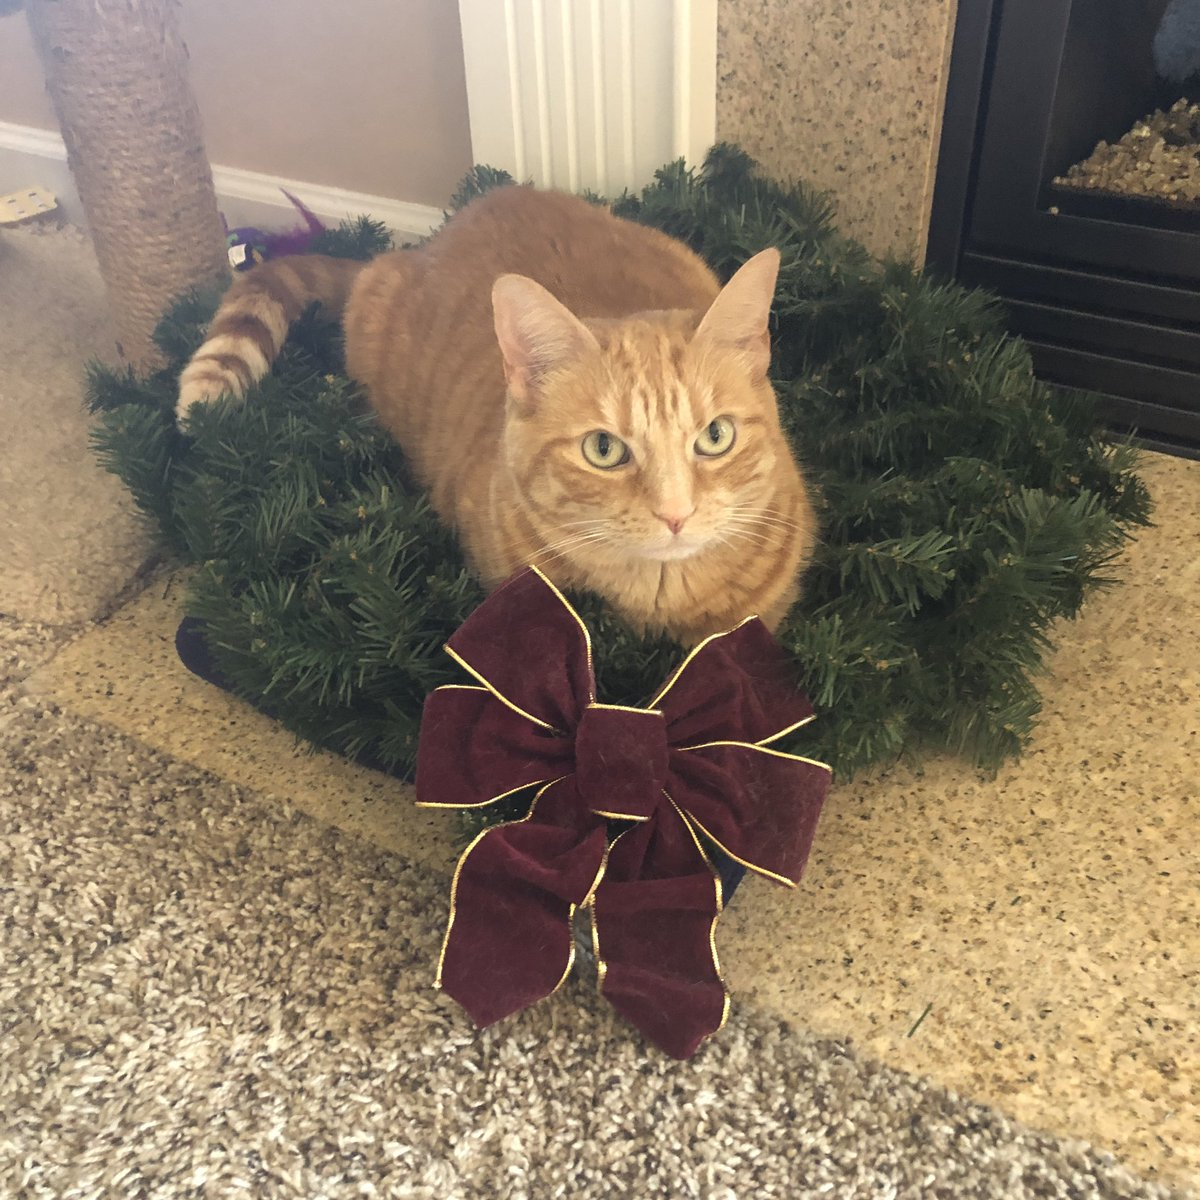 I barely got it out of the box before she was trying to get in it. #Clara #Wreath #ChristmasCat #Weirdo https://t.co/ZfOZSiVeQf